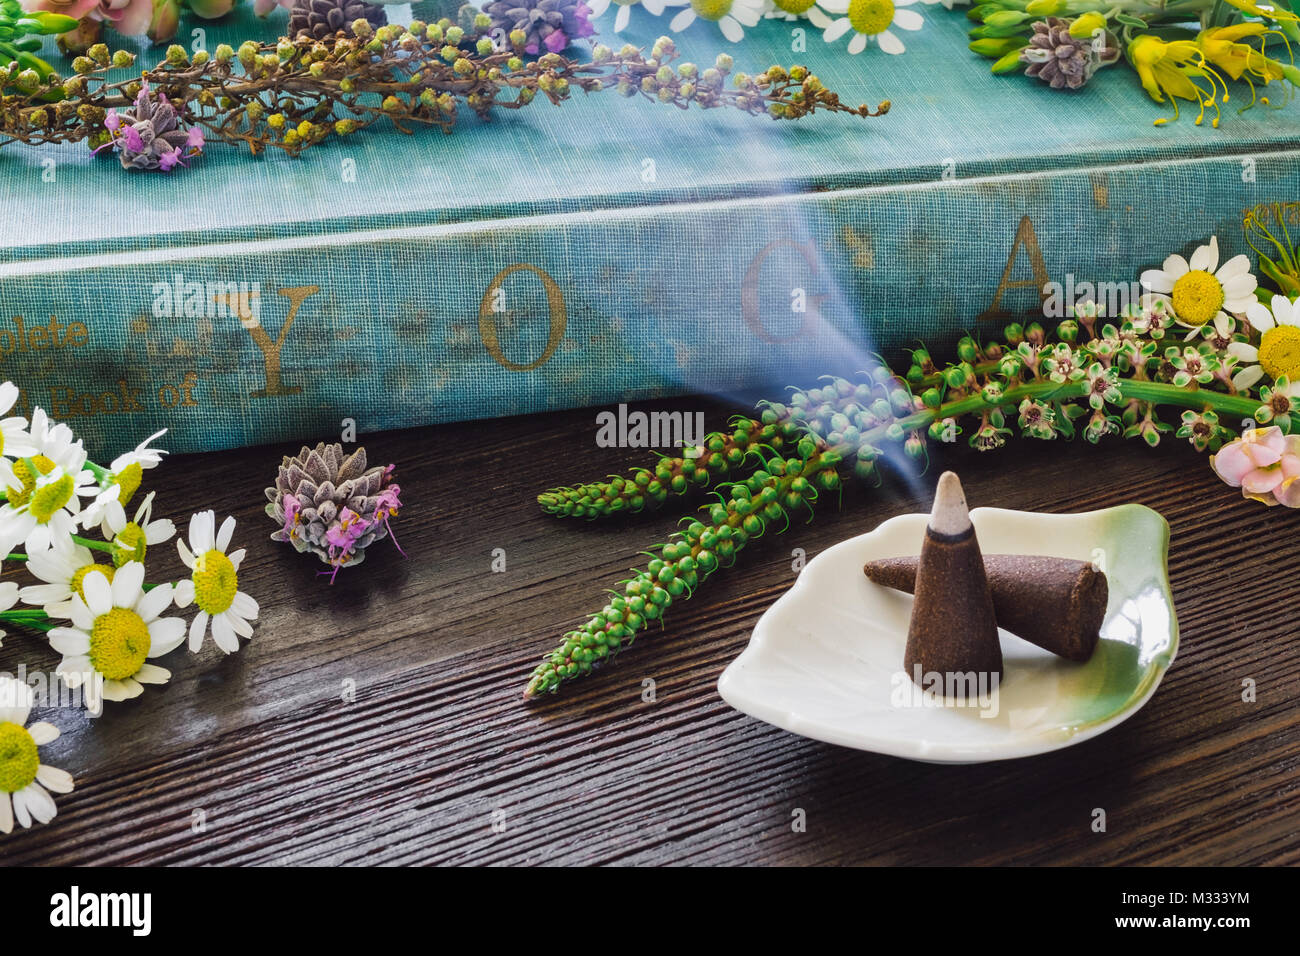 Worn Yoga Book with Flowers and Incense on Dark Wood Table - Stock Image